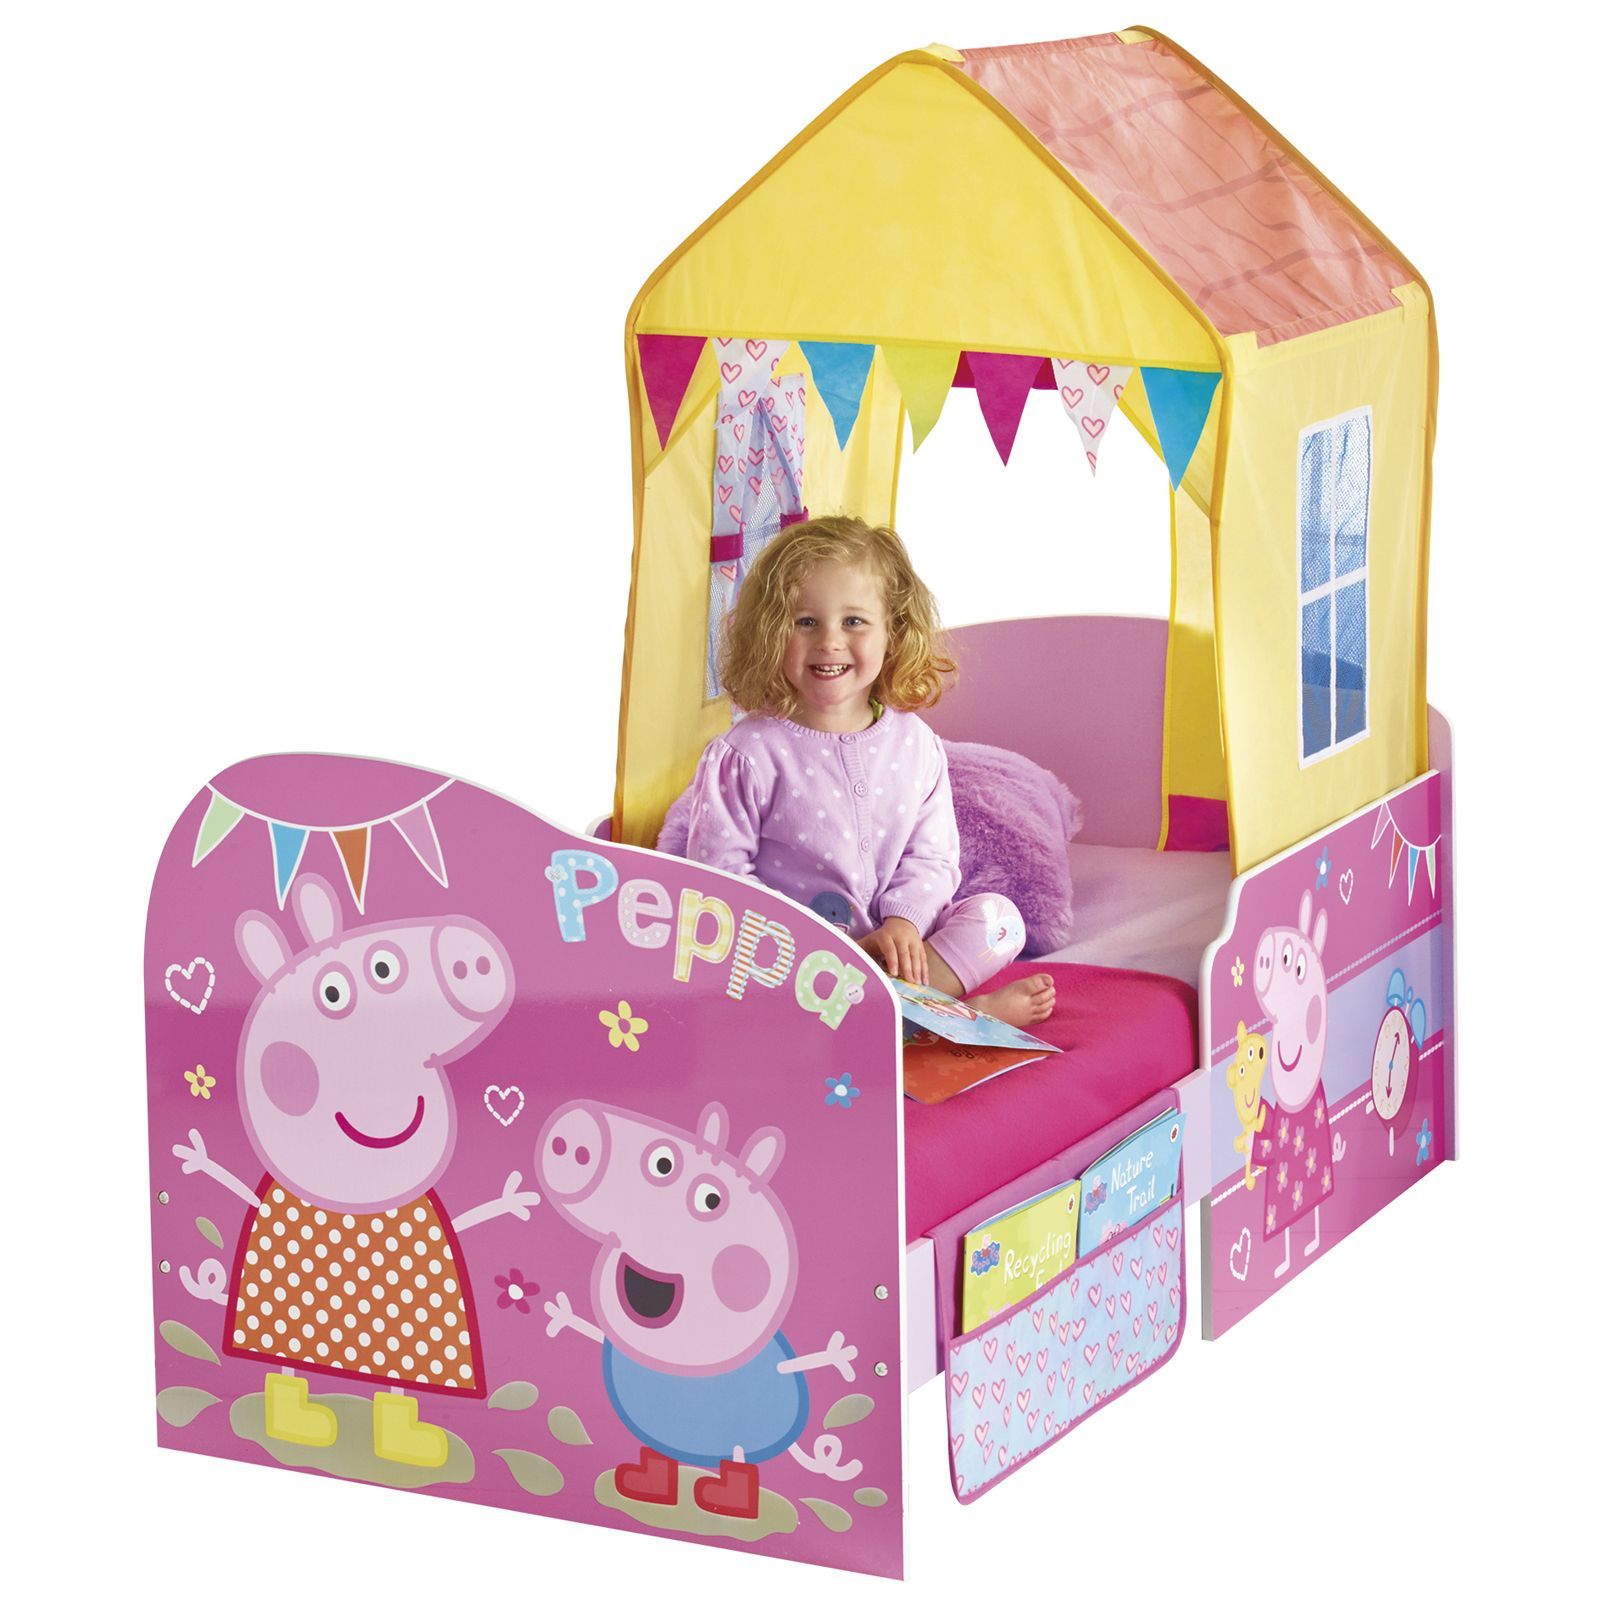 PEPPA PIG 'STARTIME' JUNIOR TODDLER FEATURE BED NEW OFFICIAL | eBay